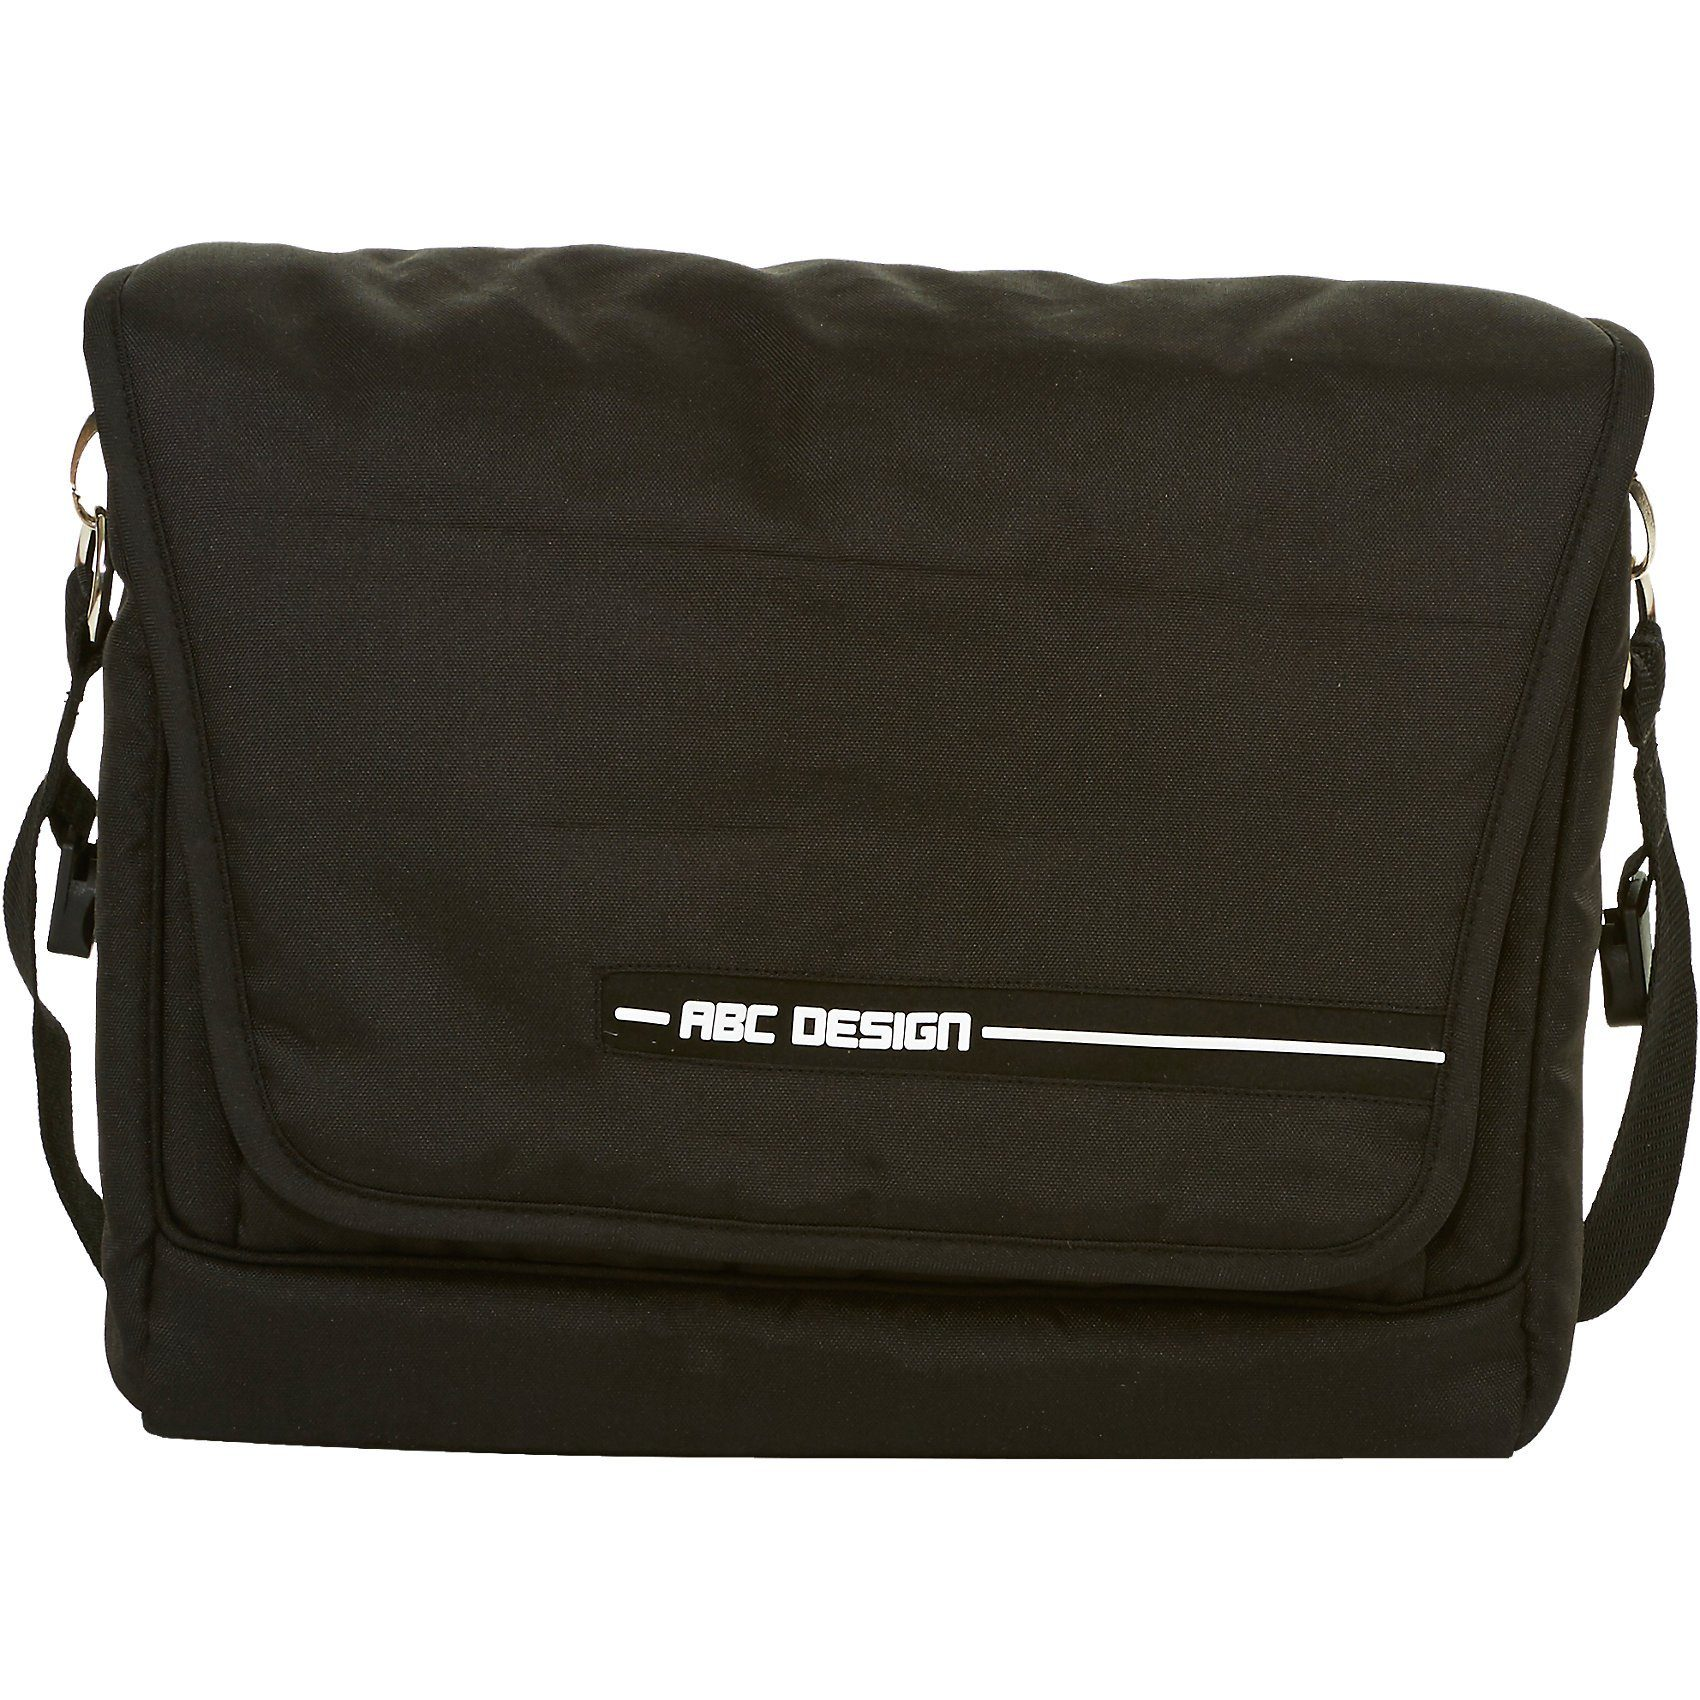 ABC Design Wickeltasche Fashion, coal